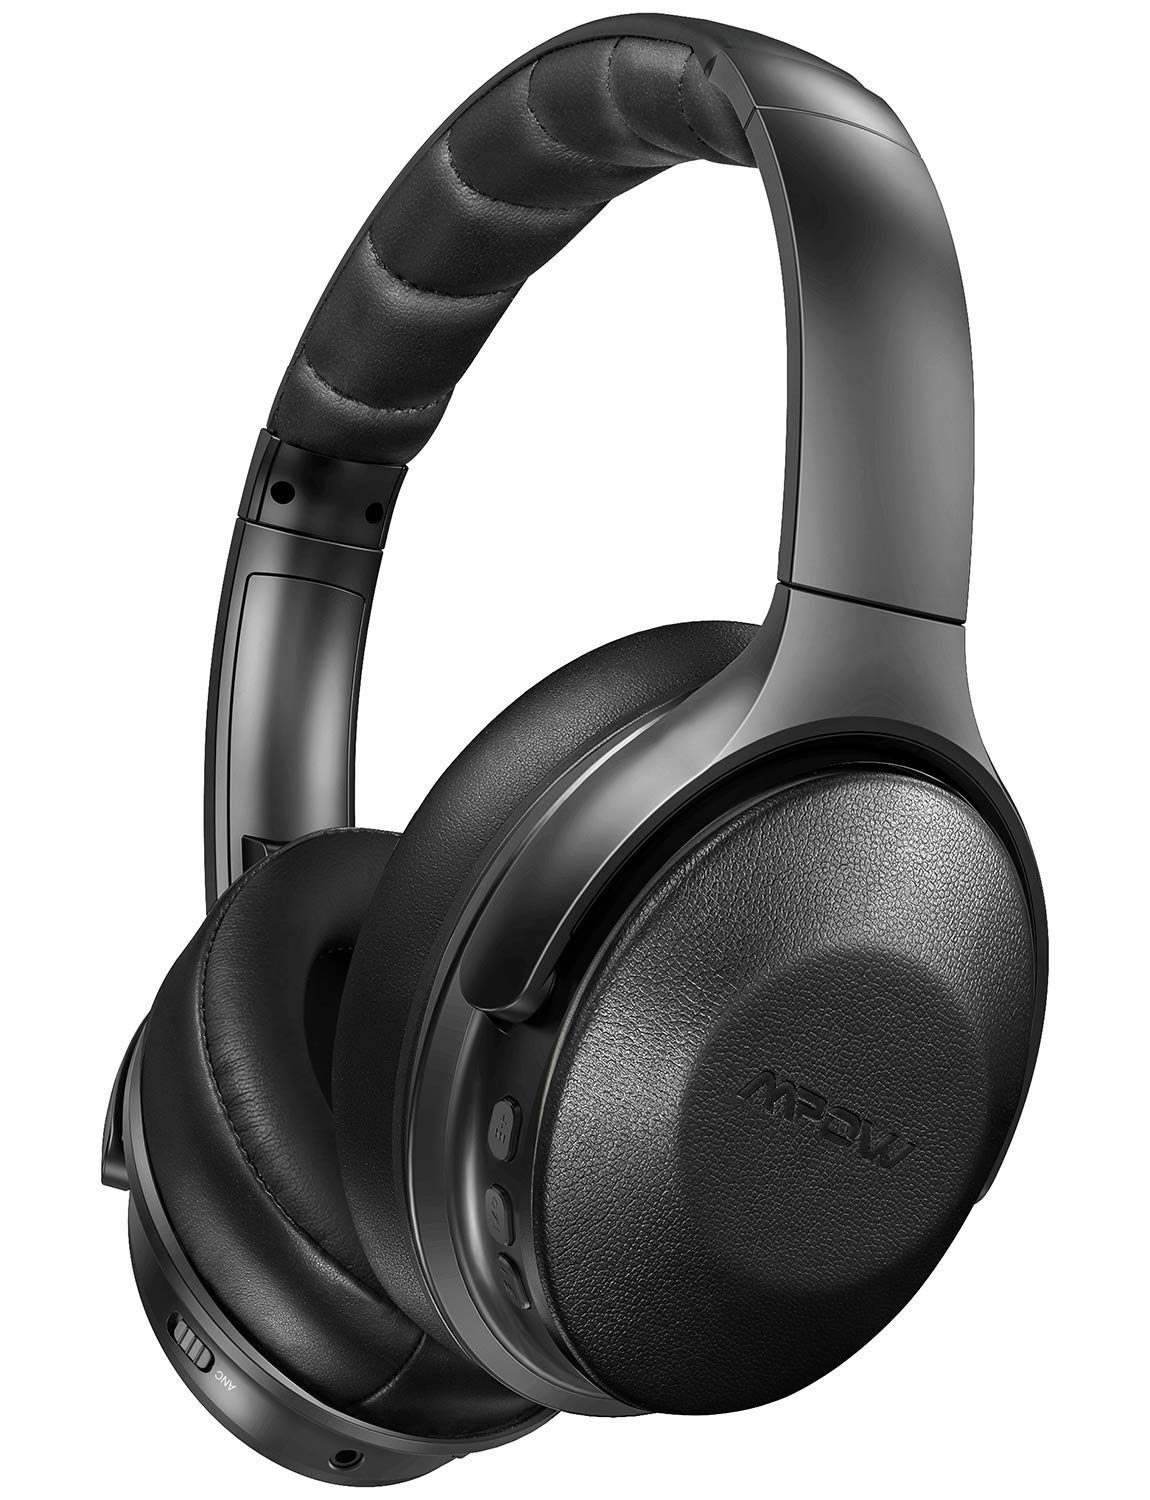 Mpow Active Noise Cancelling Headphones, Over Ear Bluetooth Headphones H17 with Quick Charge, ANC Headphones with Soft Genuine Protein Earpads, Hi-Fi Stereo Sounds, 30H Playtime for TV/Travel by Mpow